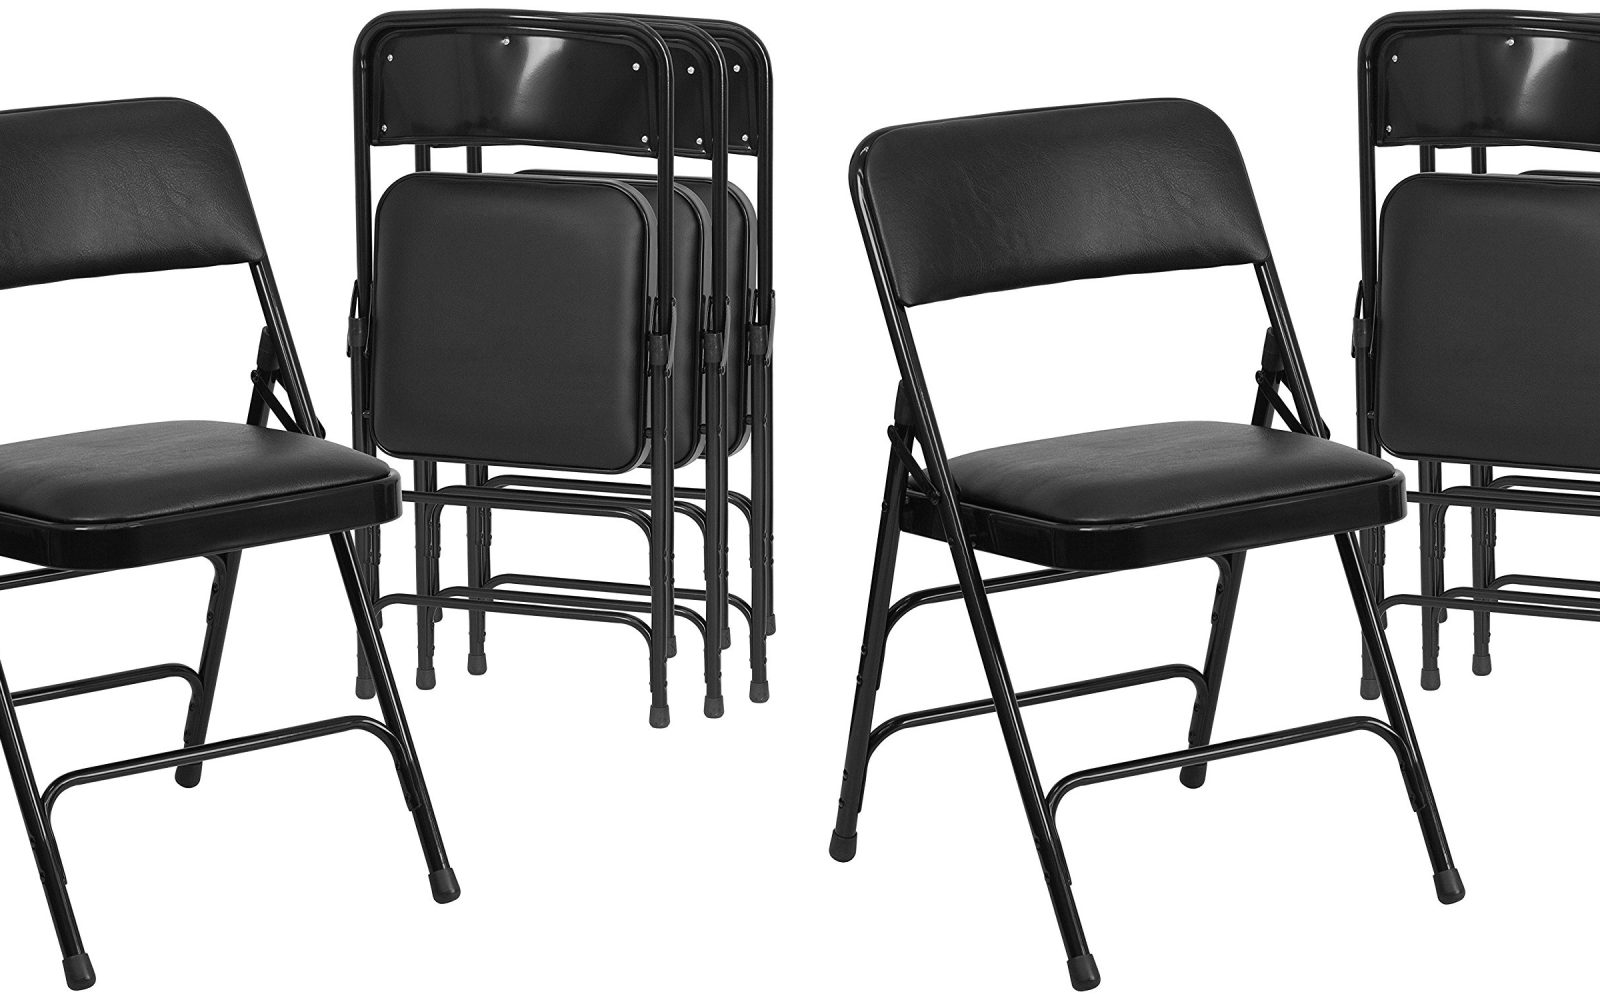 Amazon Is Offering The Hercules Metal Folding Chairs For